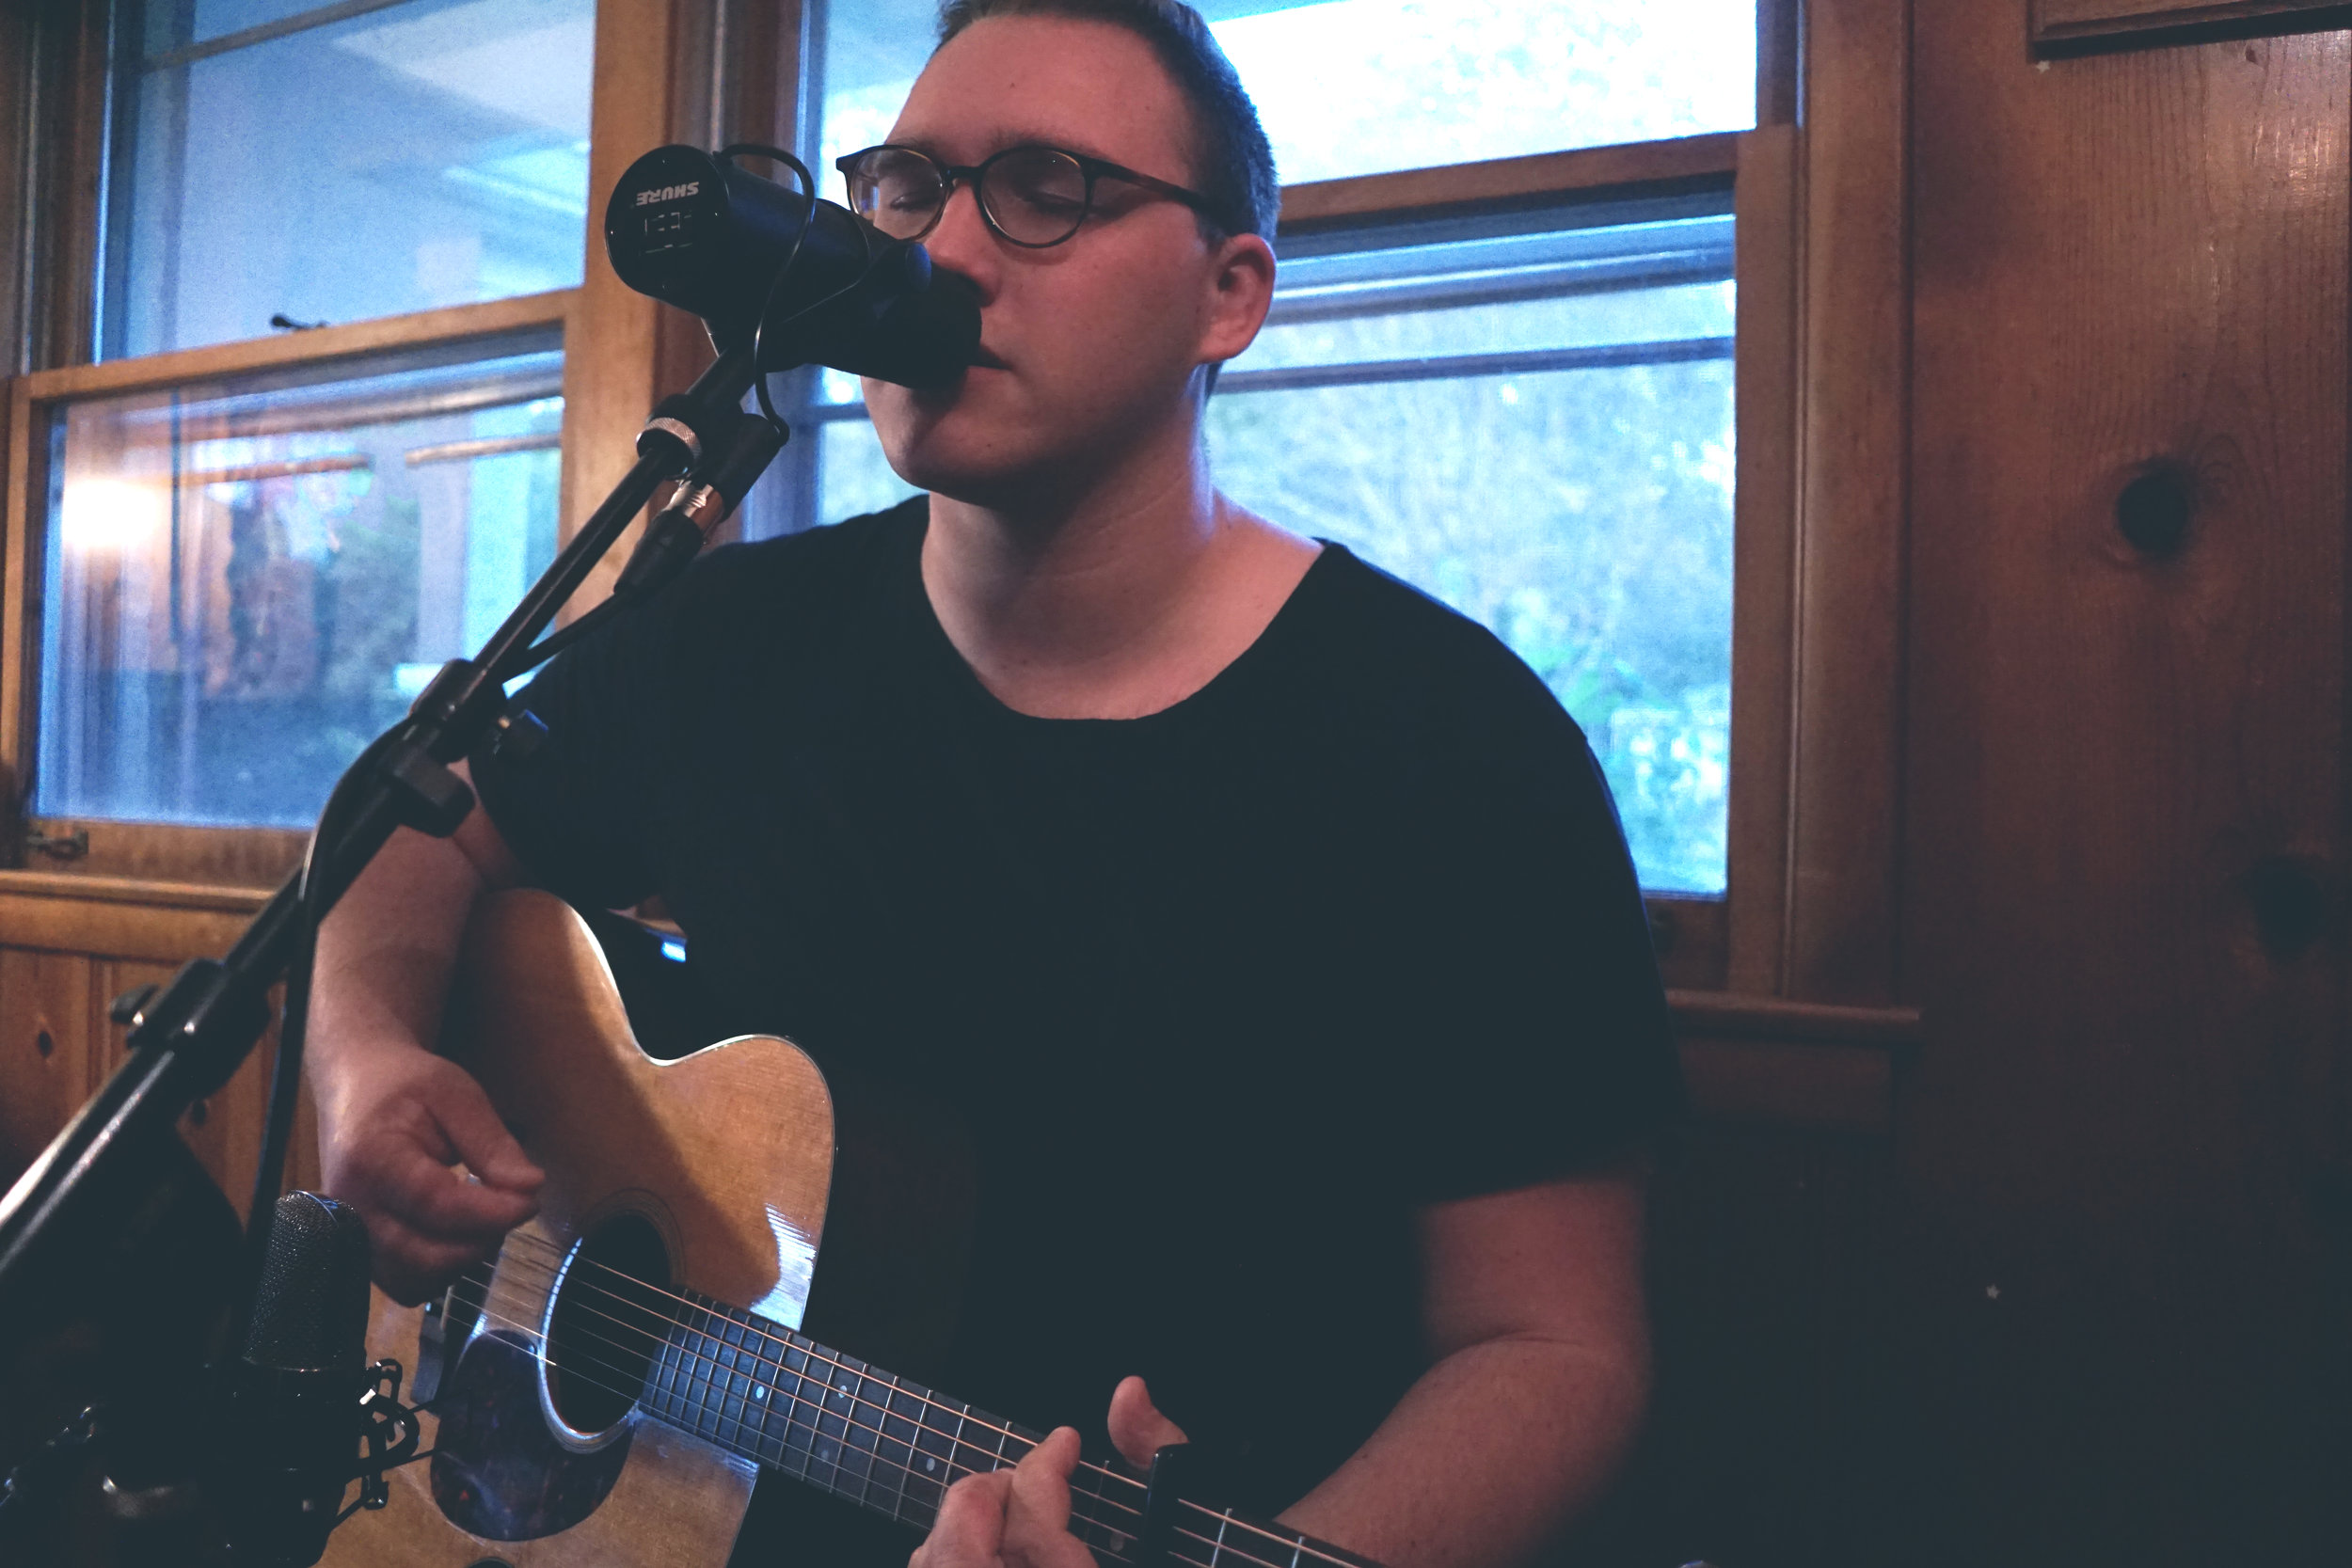 The Worship Series: Lord I Need You - by Joshua Kyle Dunn